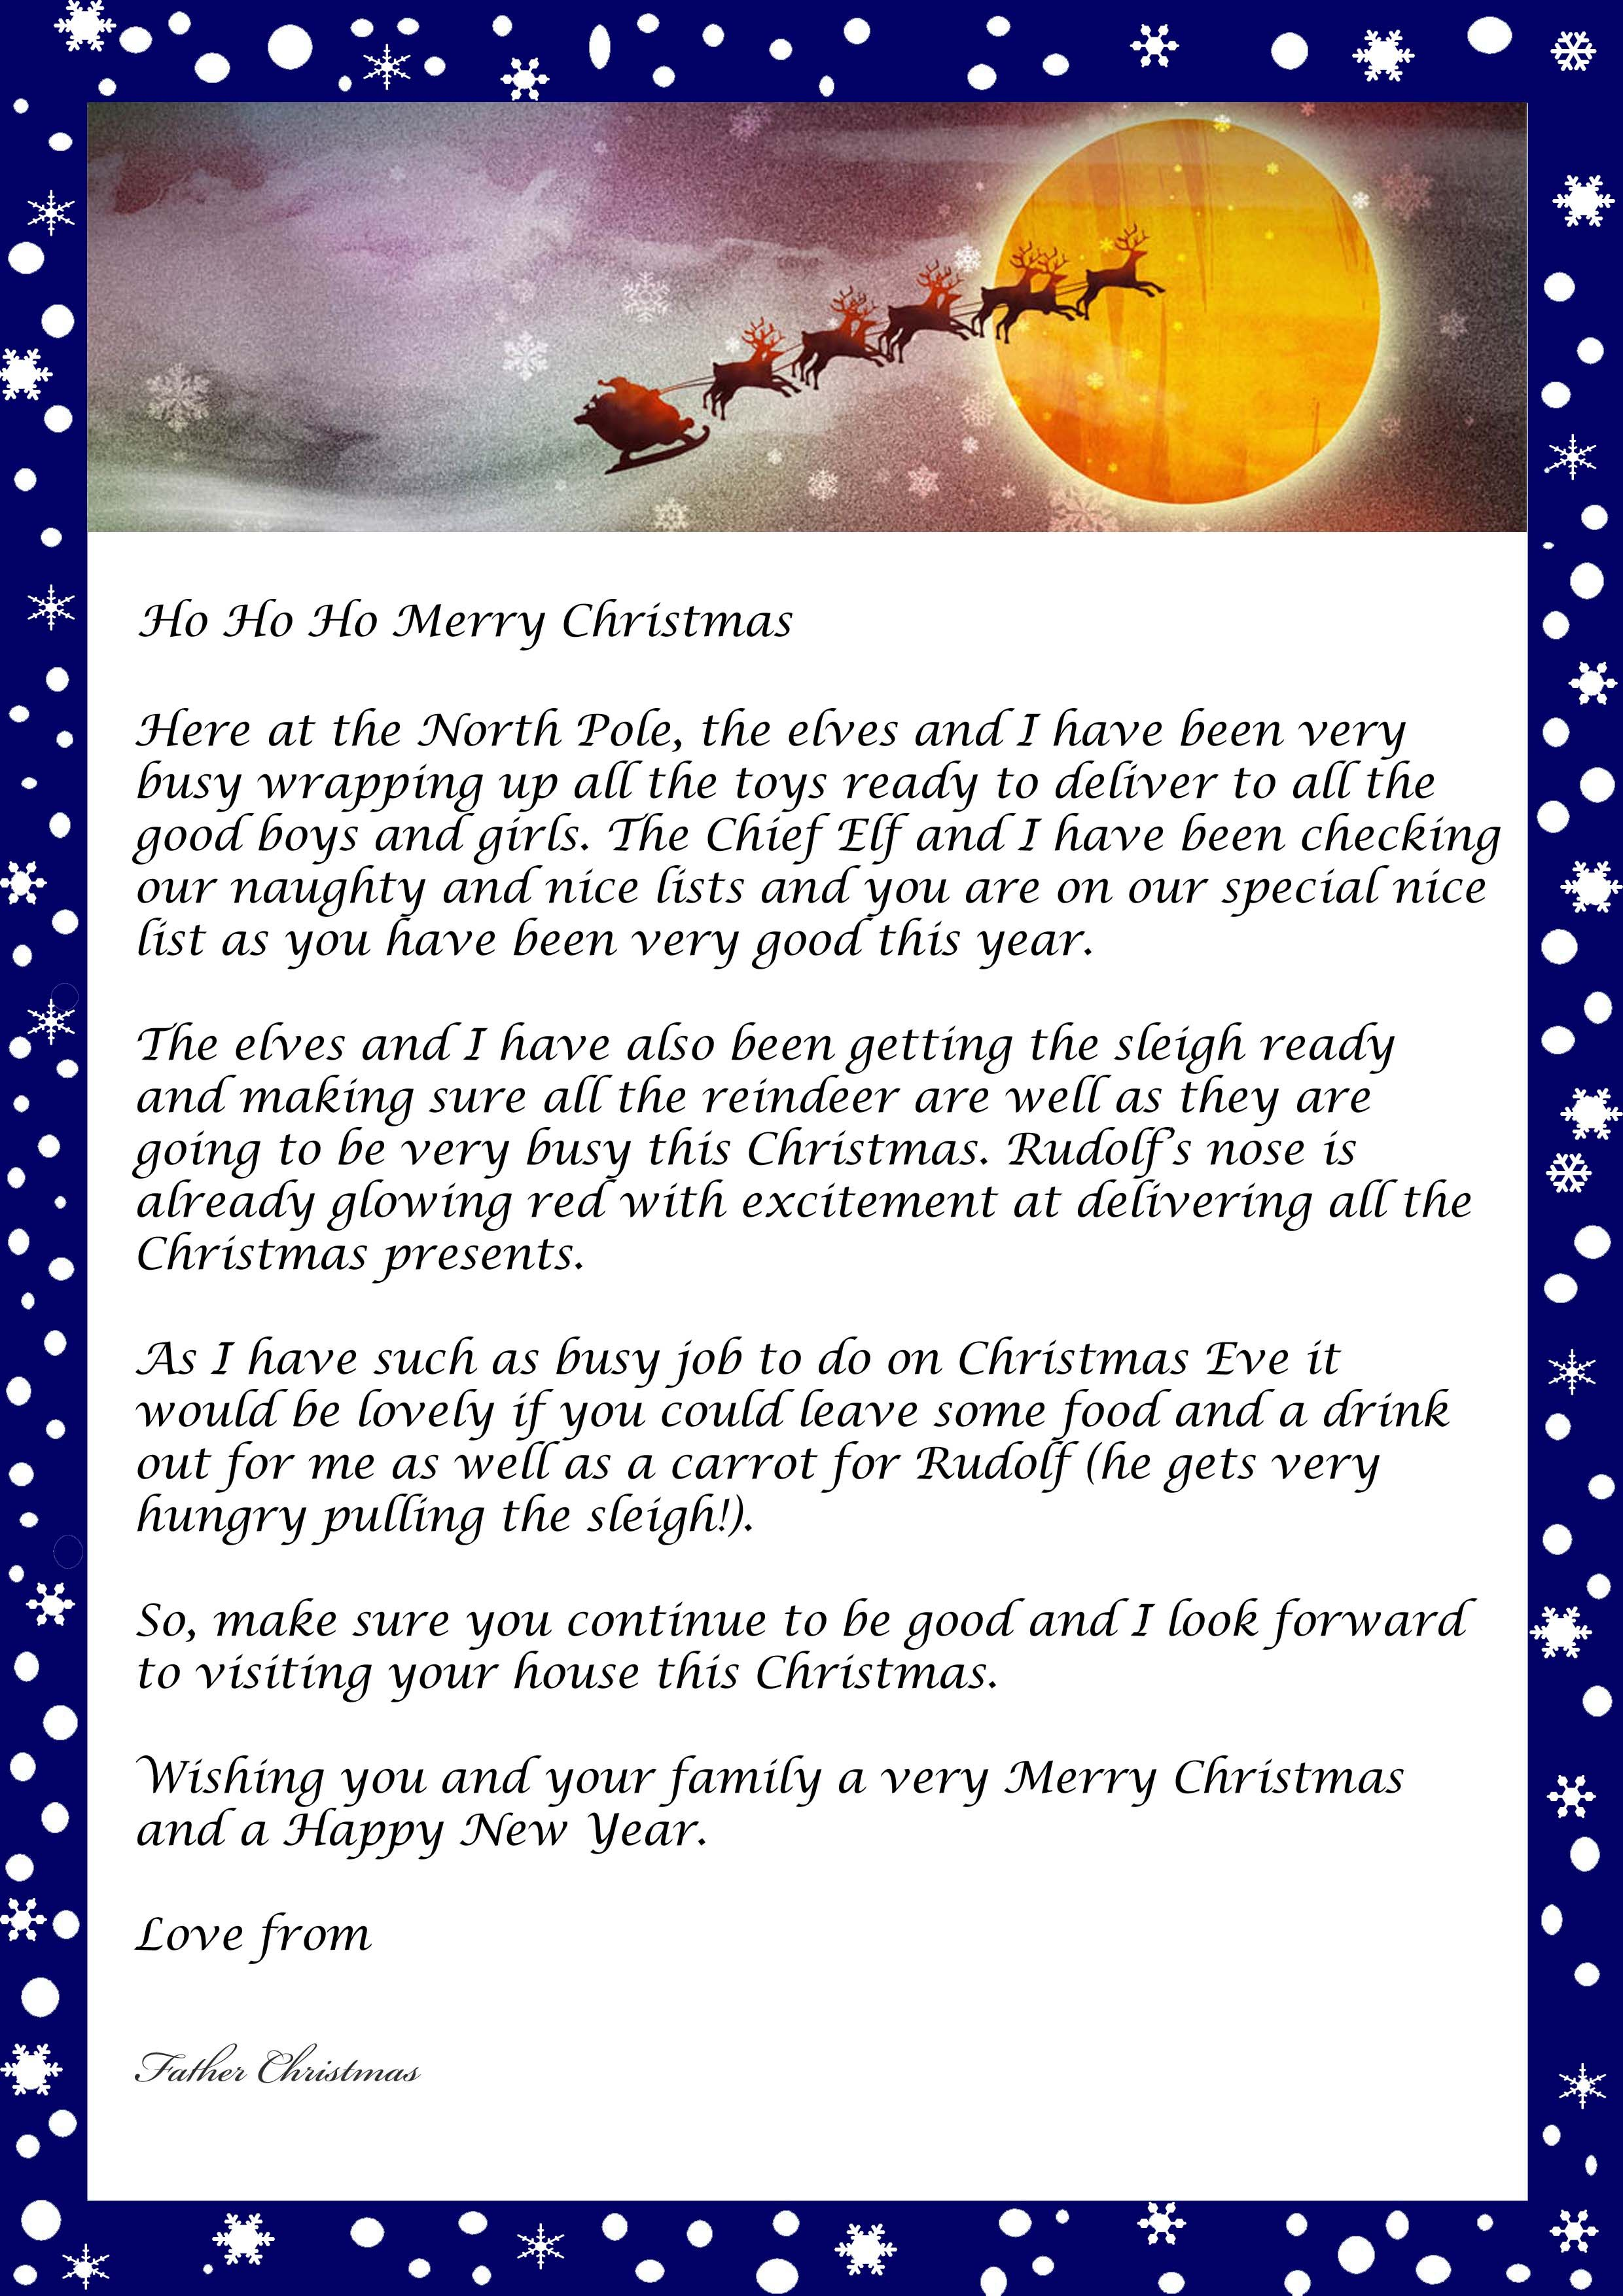 Letter from father christmas free printable templateg 2480 letter from father christmas free printable templateg 2480 spiritdancerdesigns Image collections